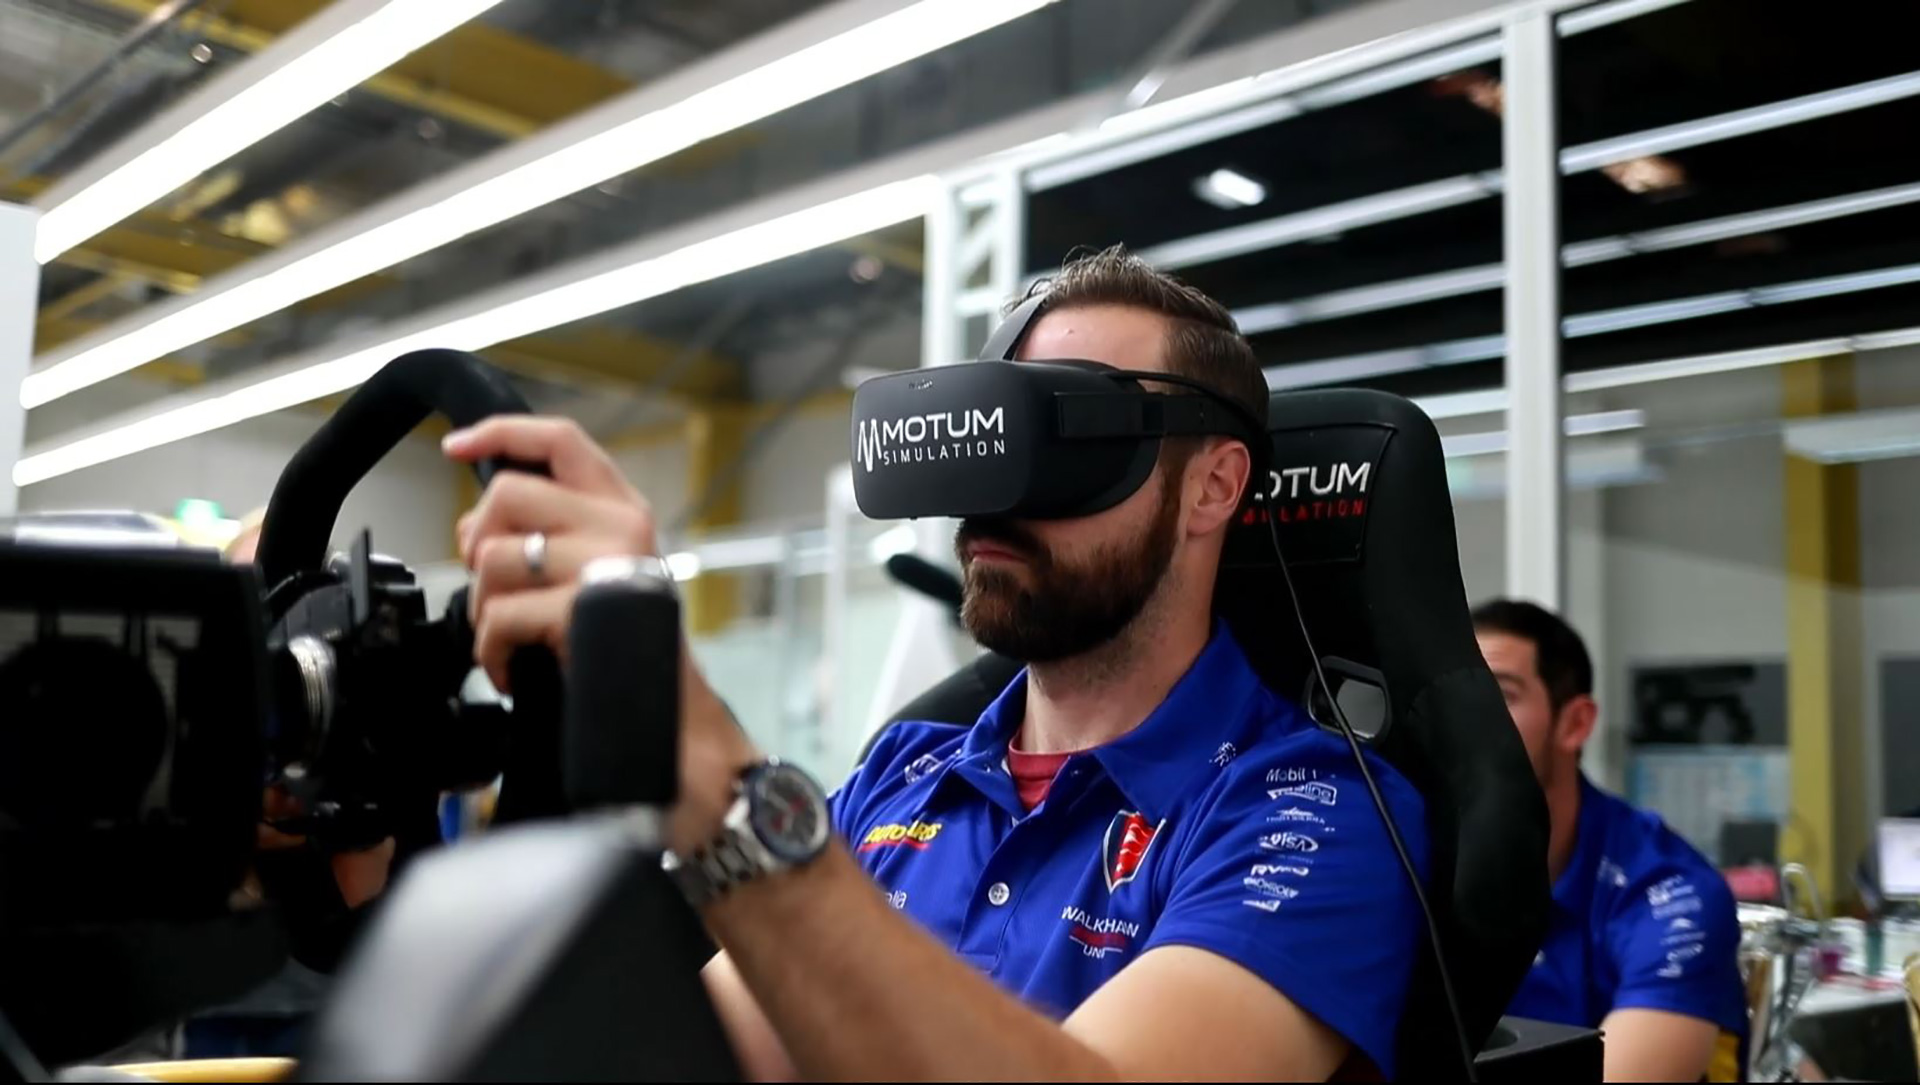 James Hinchcliffe on the Motum Simulator.